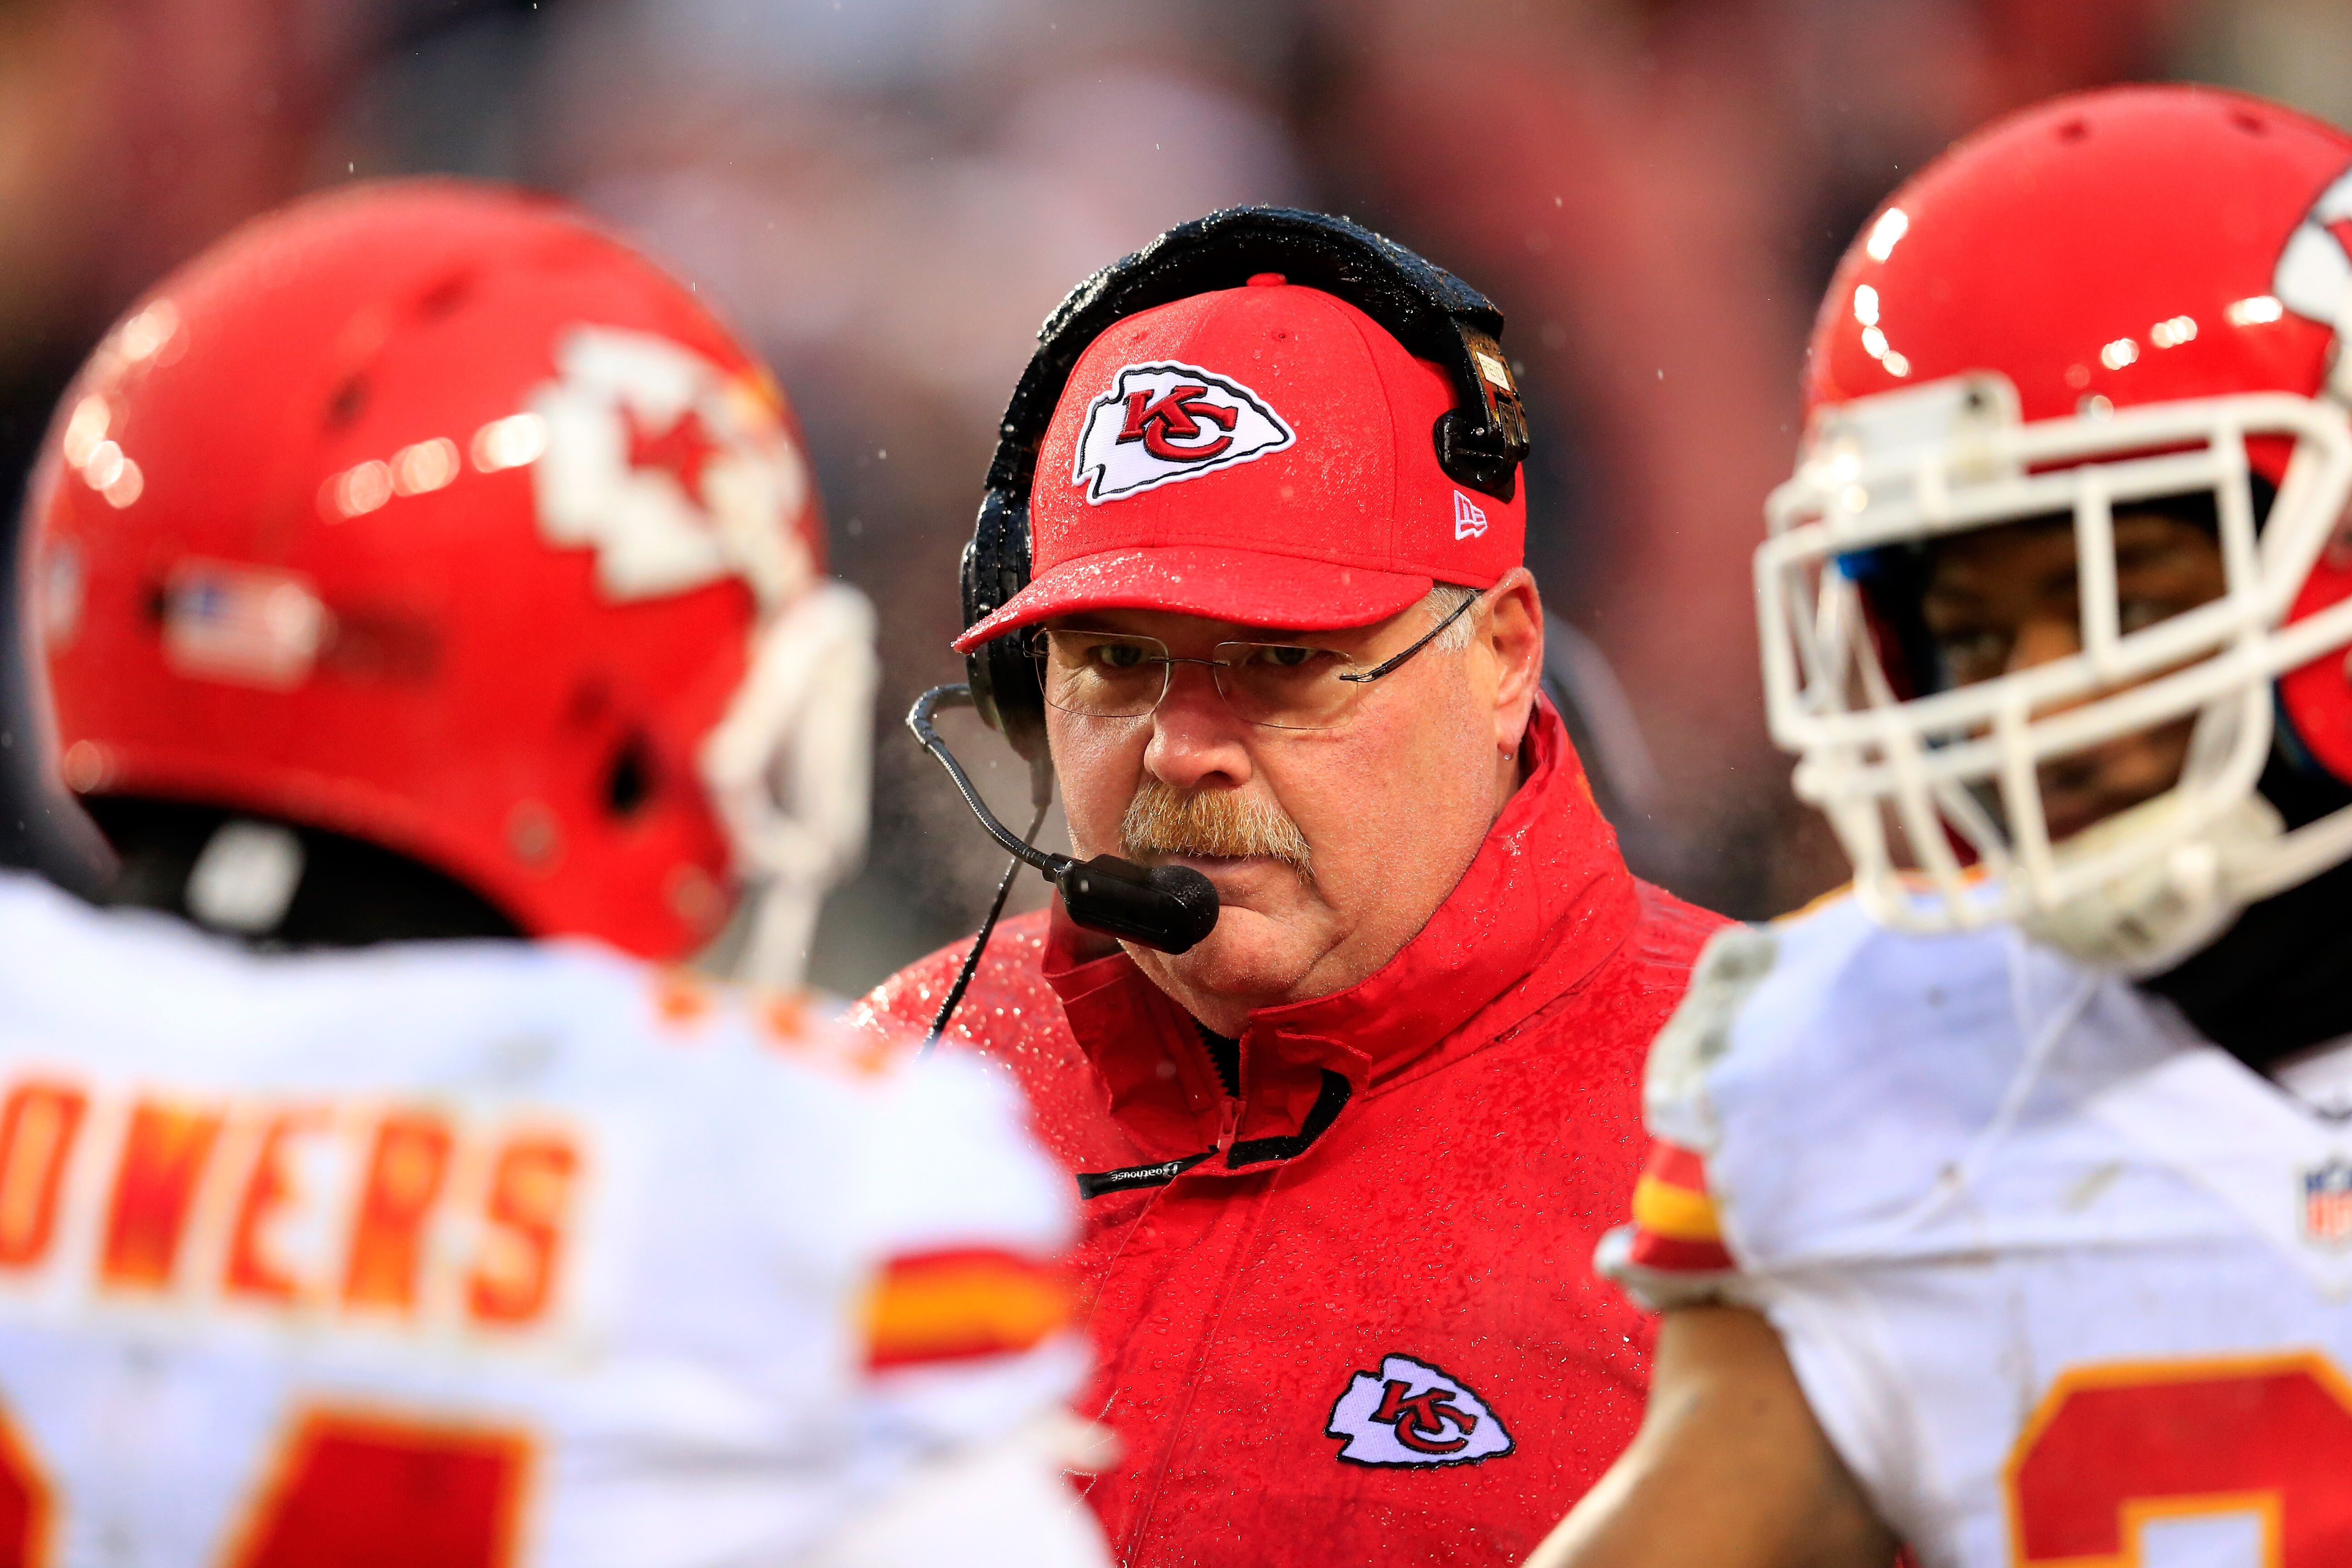 LANDOVER, MD - DECEMBER 08: Head coach Andy Reid of the Kansas City Chiefs looks on from the sidelines during the second half against the Washington Redskins at FedExField on December 8, 2013 in Landover, Maryland. </p>                 </div>             </div>          </div>                   <div class=